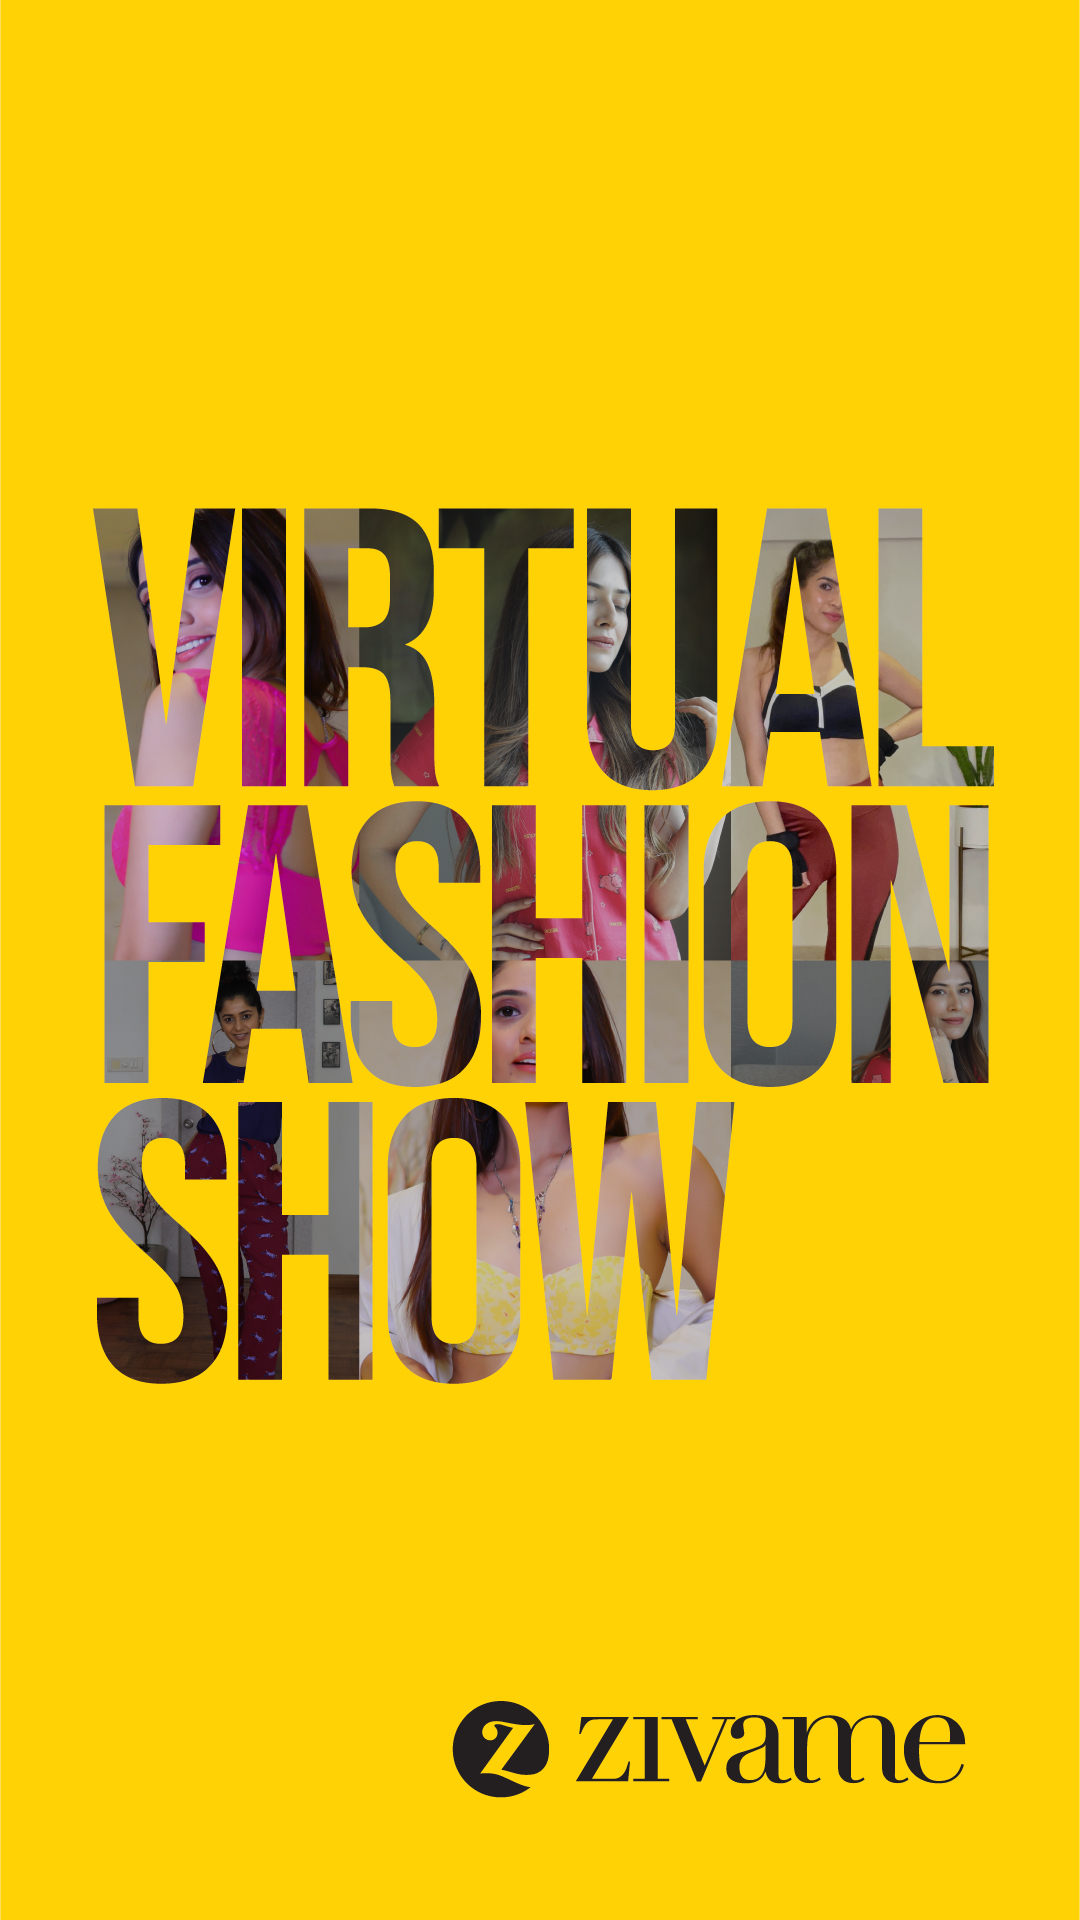 ZIVAME HOSTS ITS FIRST EVER VIRTUAL FASHION SHOW